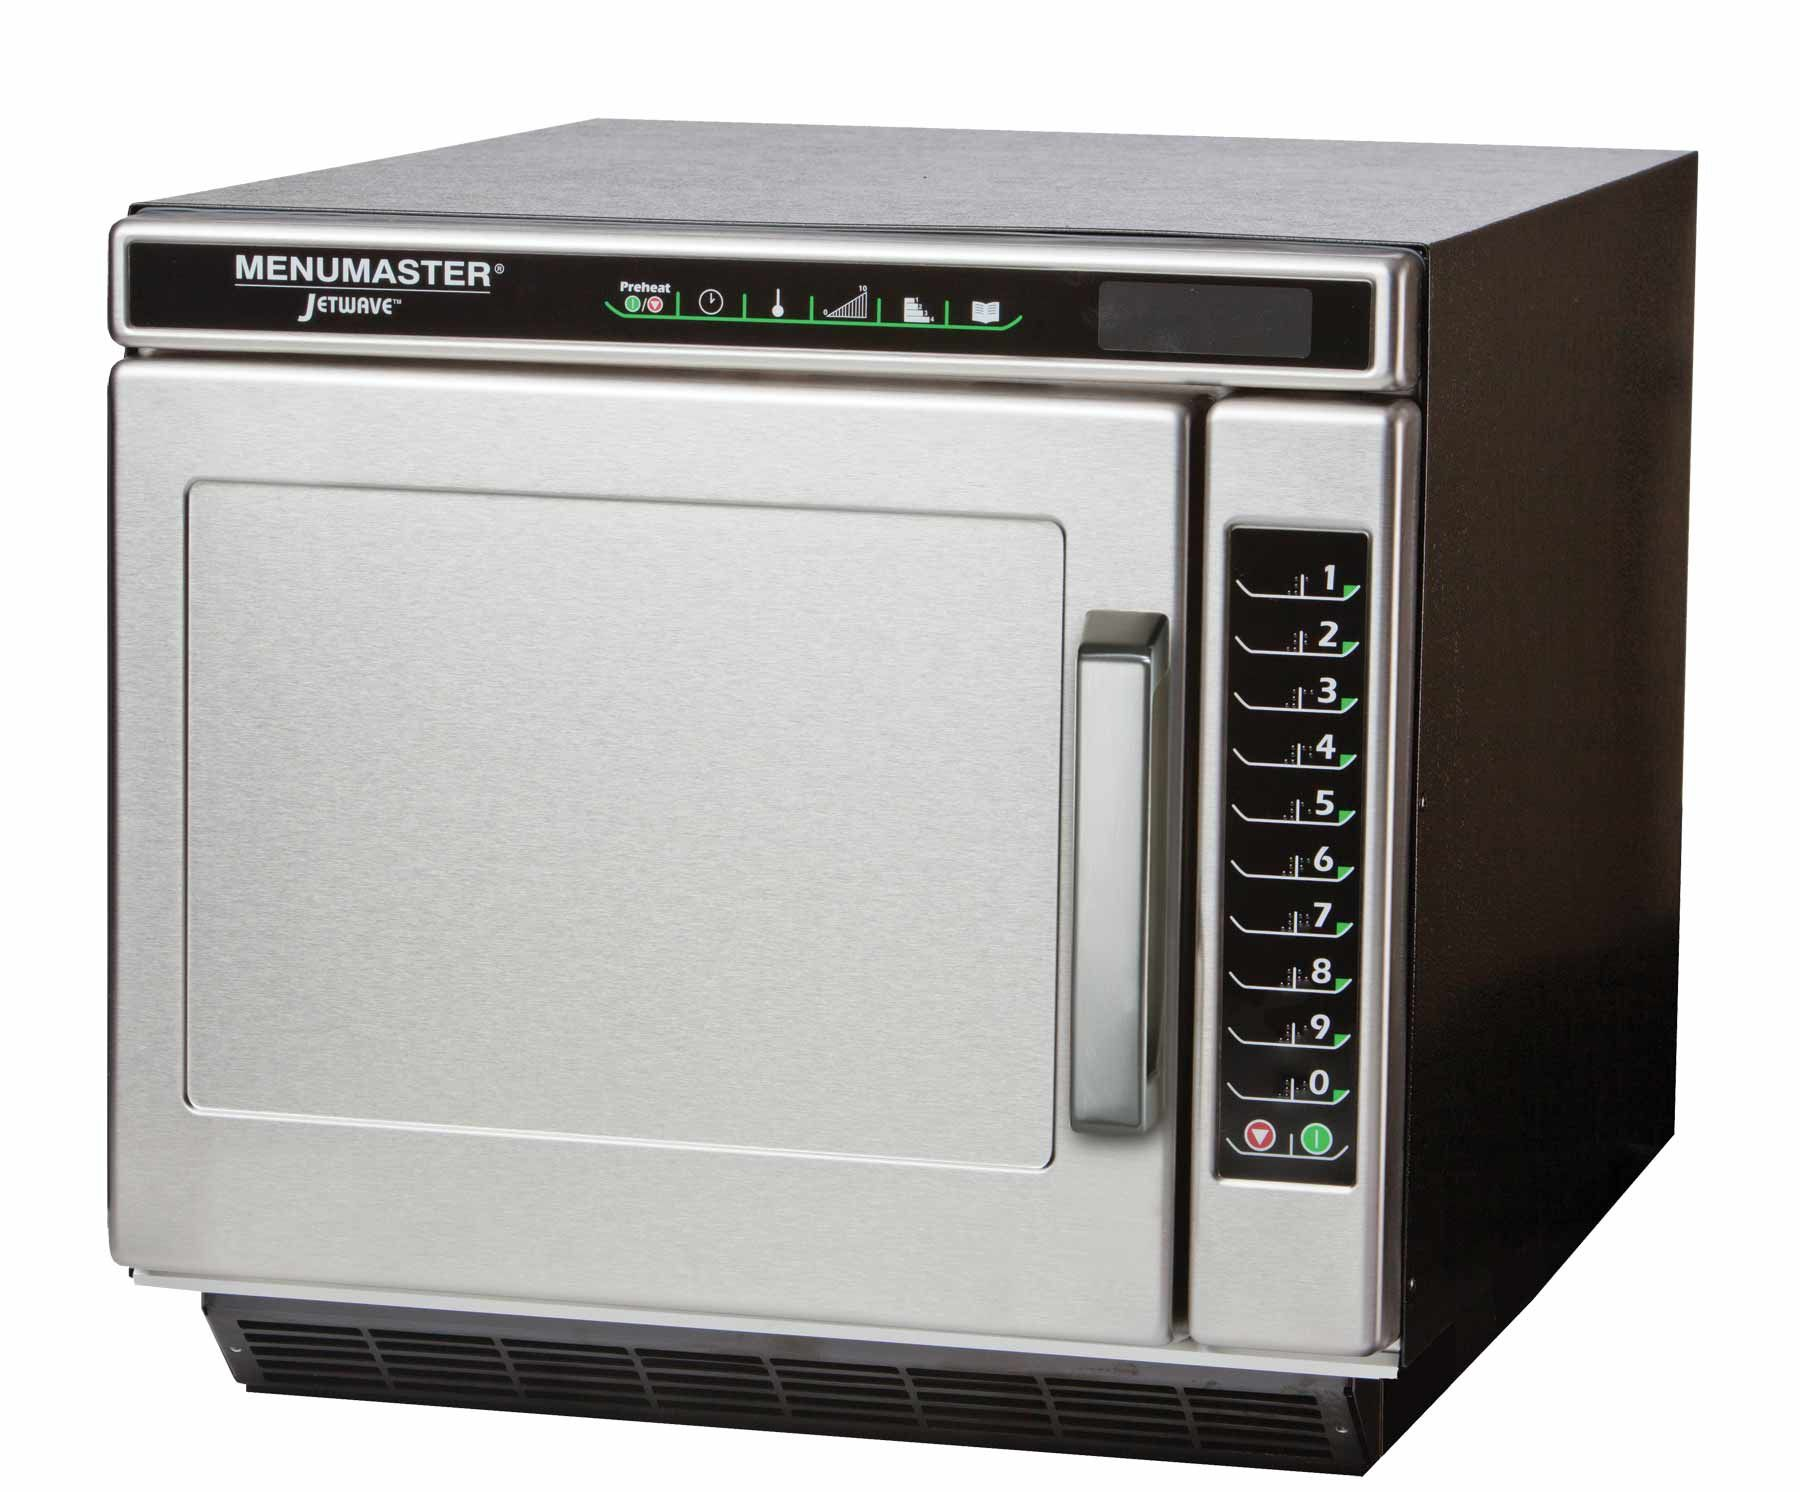 Electric Oven Commercial Microwave Jet514